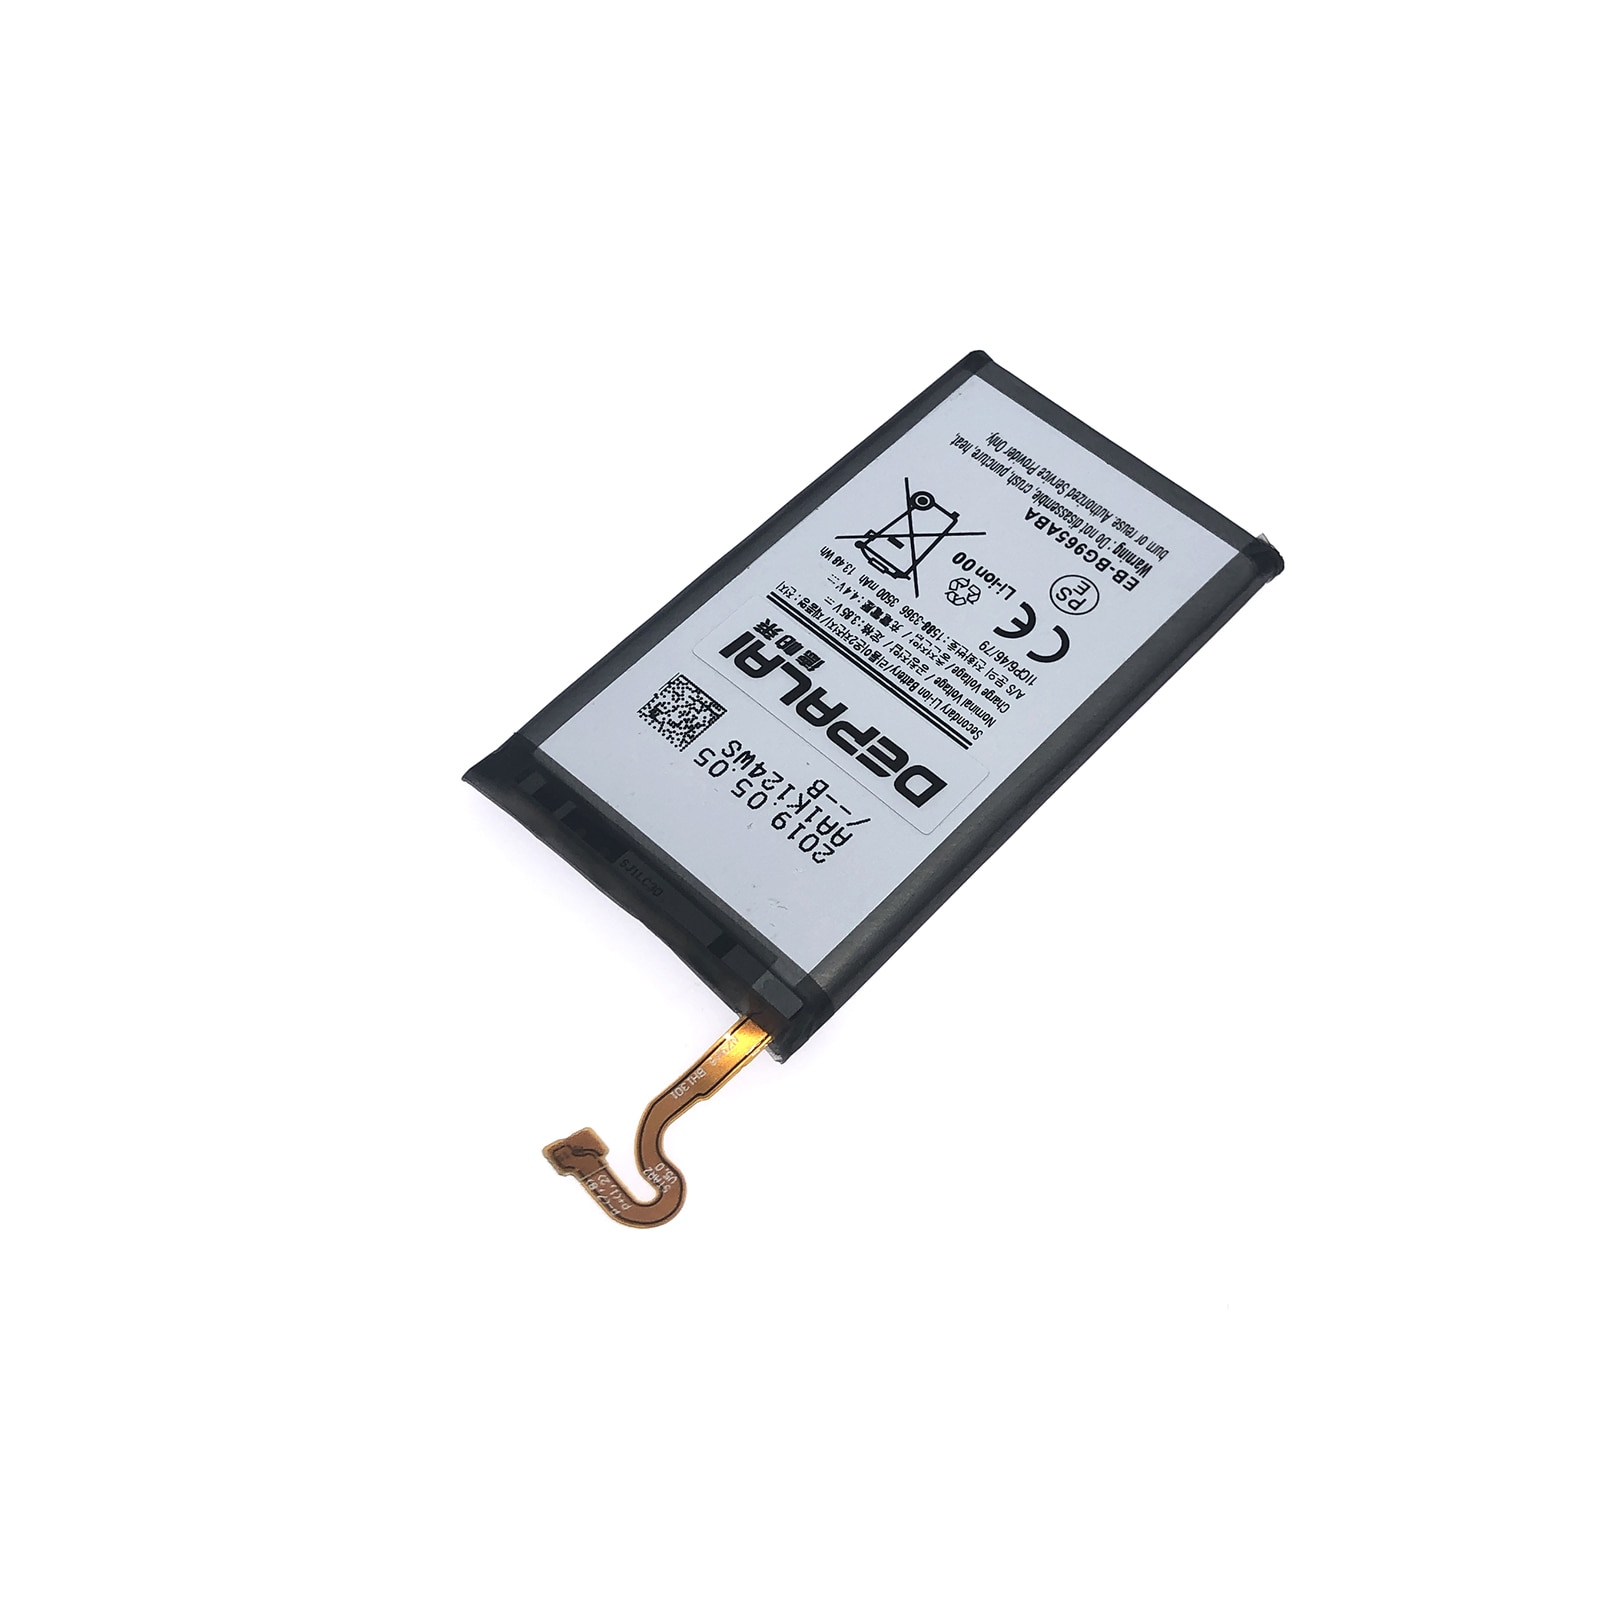 EB-BG965ABE Battery For Samsung S9 Plus G965F SM-G965 G9650 Lipo Li-Po Lithium Li-polymer Rechargeable battery enlarge